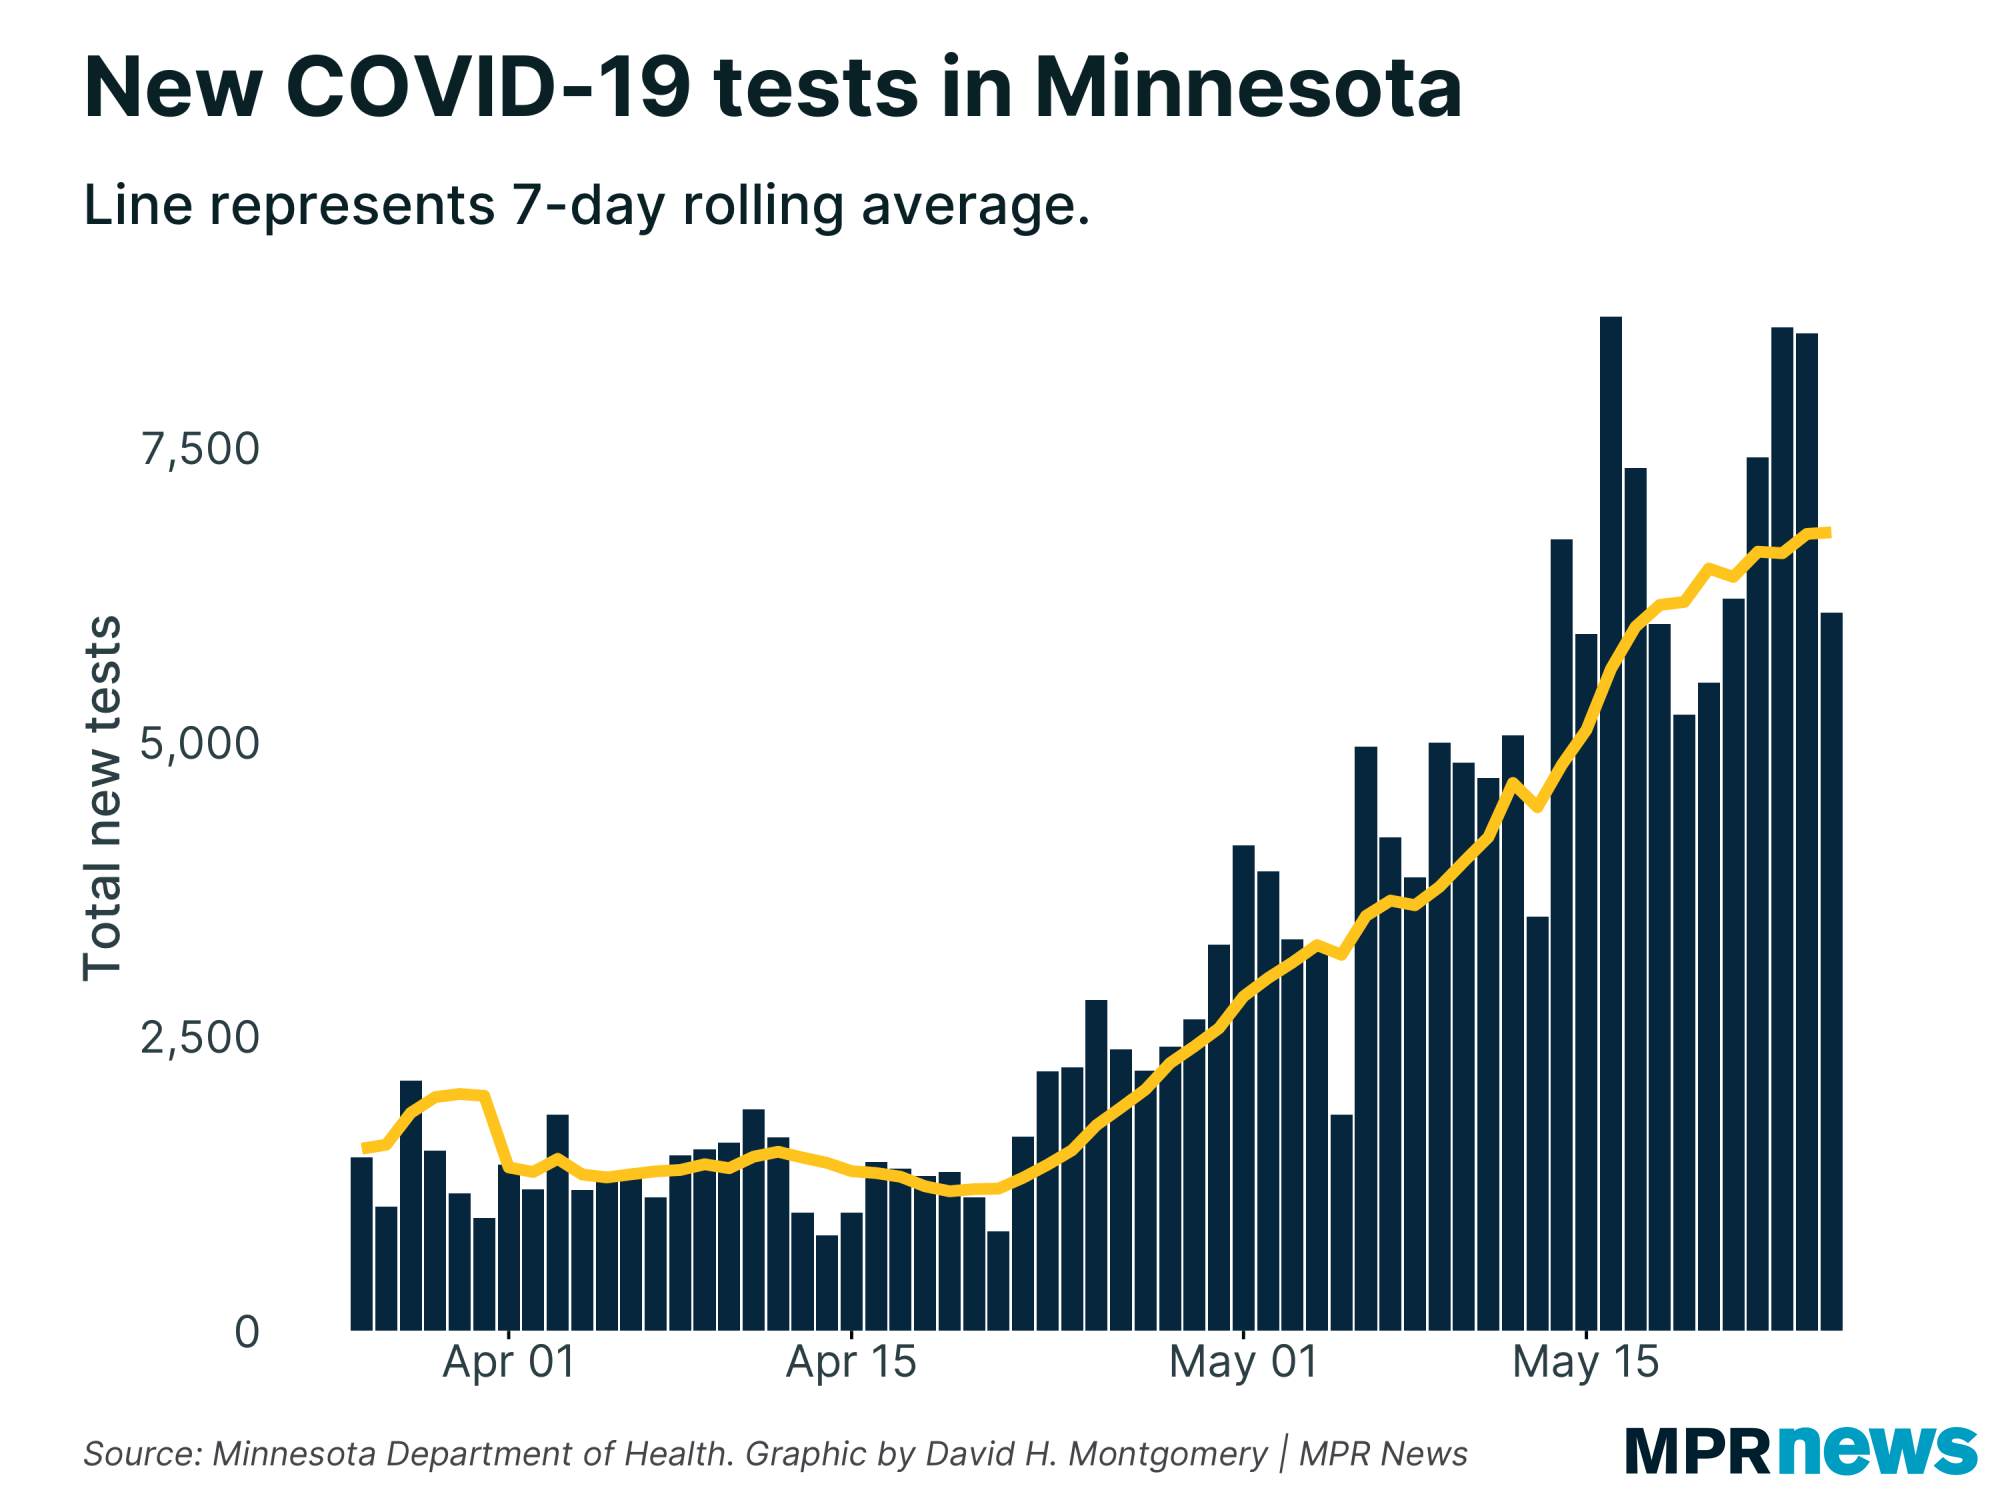 New COVID-19 tests in Minnesota